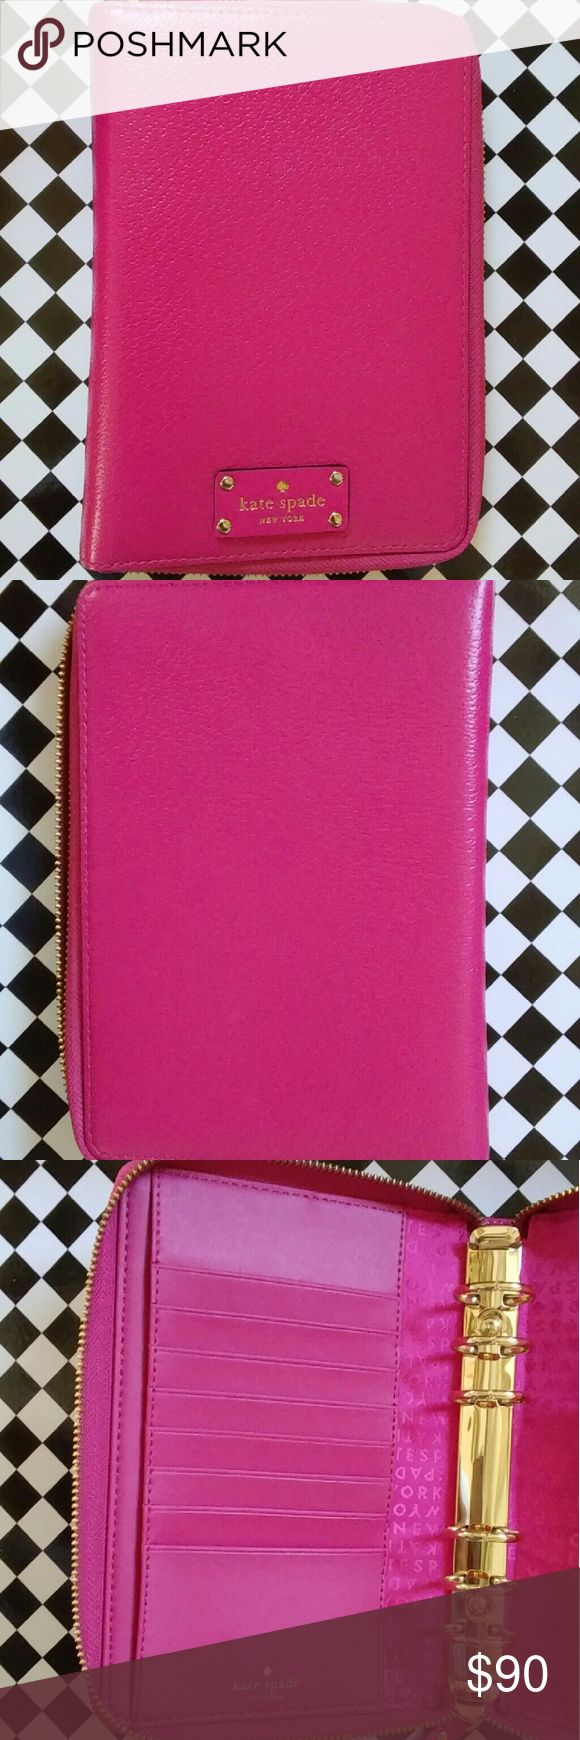 Kate Spade Wellesley planner (Re-Posh) This is New and is in excellent condition. I purchased a bigger planner so I no longer need this one. It is gorgeous. *Purchased without inserts. **Purchase will include 1 gold Kate Spade pen 😊* kate spade Other